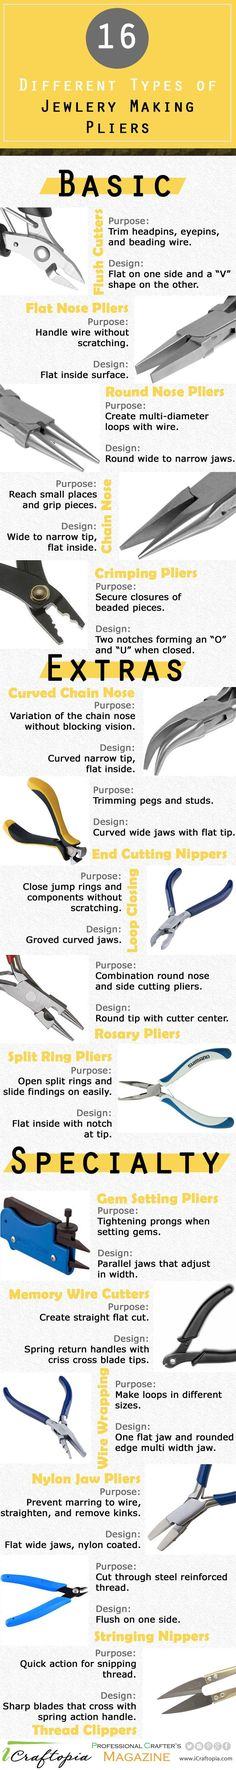 16 Different Types of Jewelry Making Pliers by iCraftopia.com